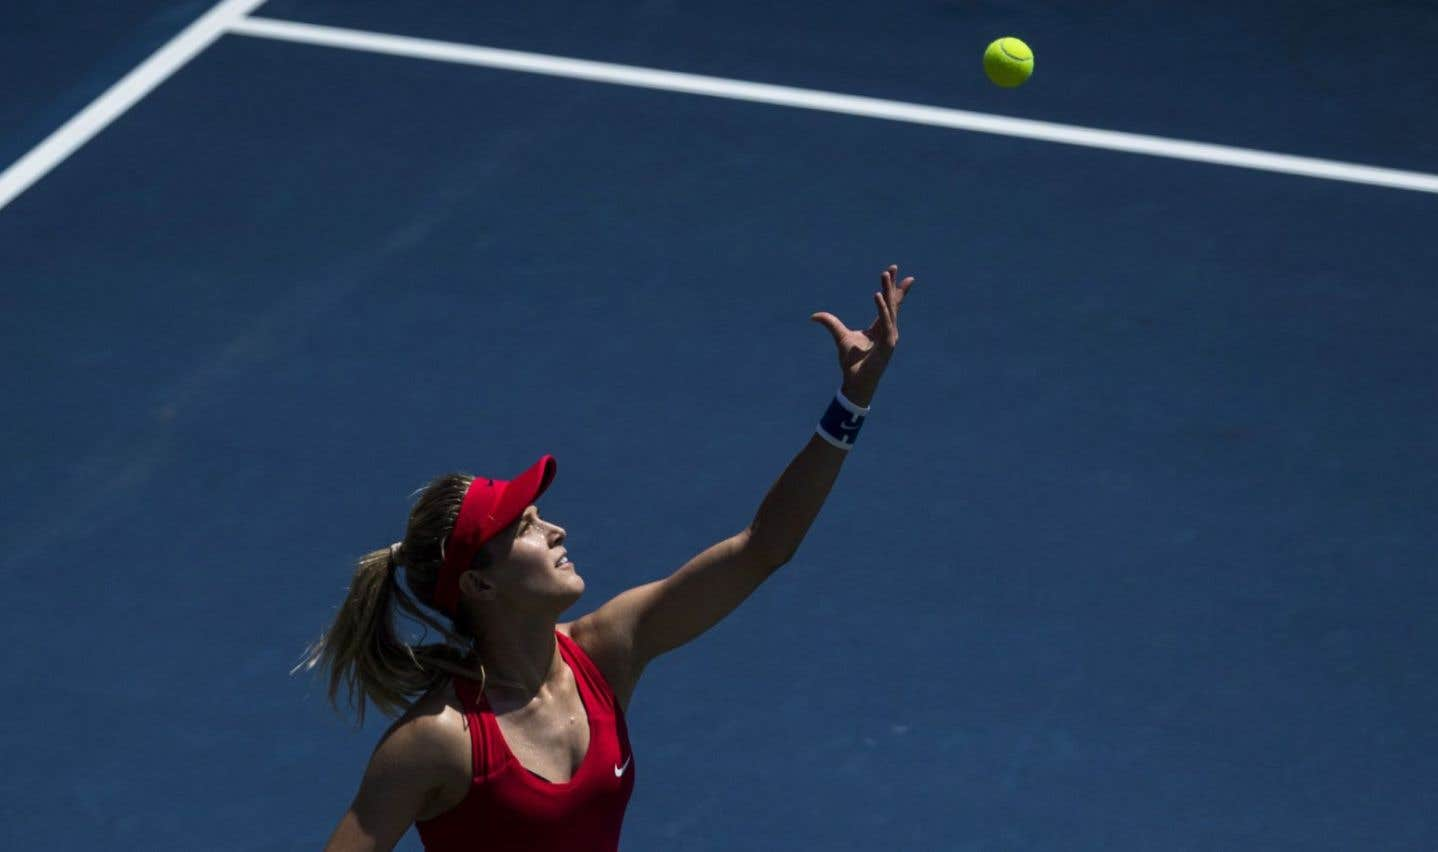 Bouchard bloquée au premier tour en simple